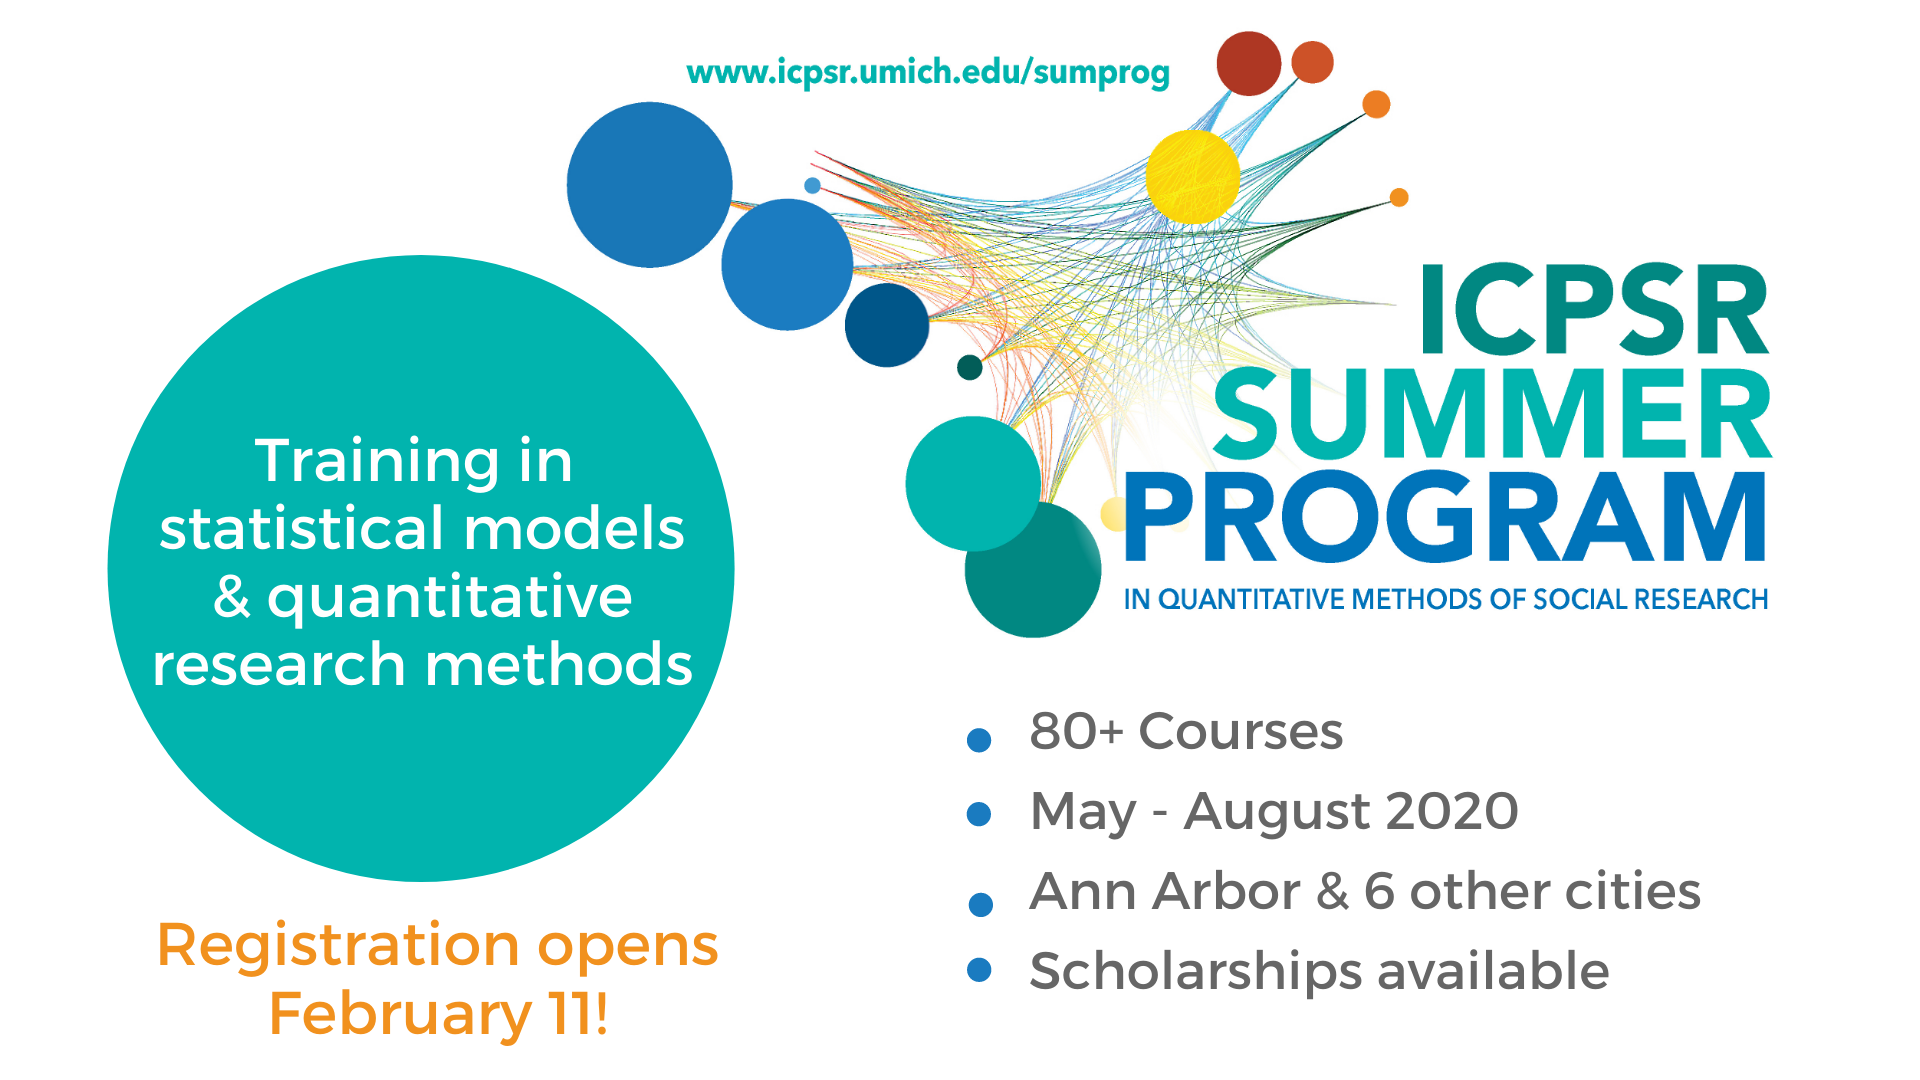 ICPSR Summer Program In quantitative methods of social research. www.icpsr.umich.edu/sumprog